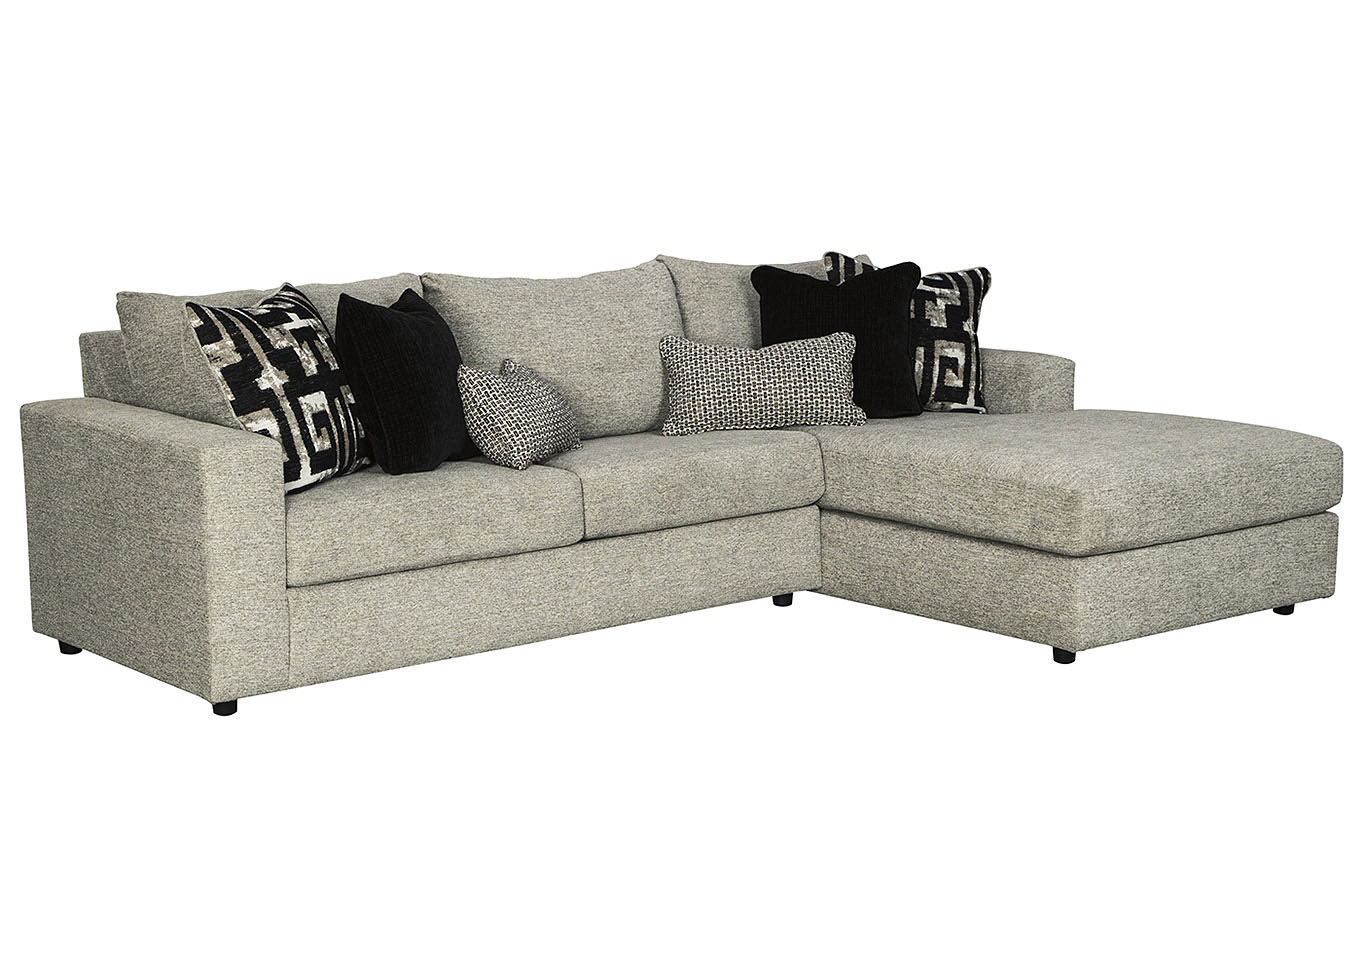 Ravenstone Flint Right-Arm Facing Chaise End Sofa,Signature Design By Ashley